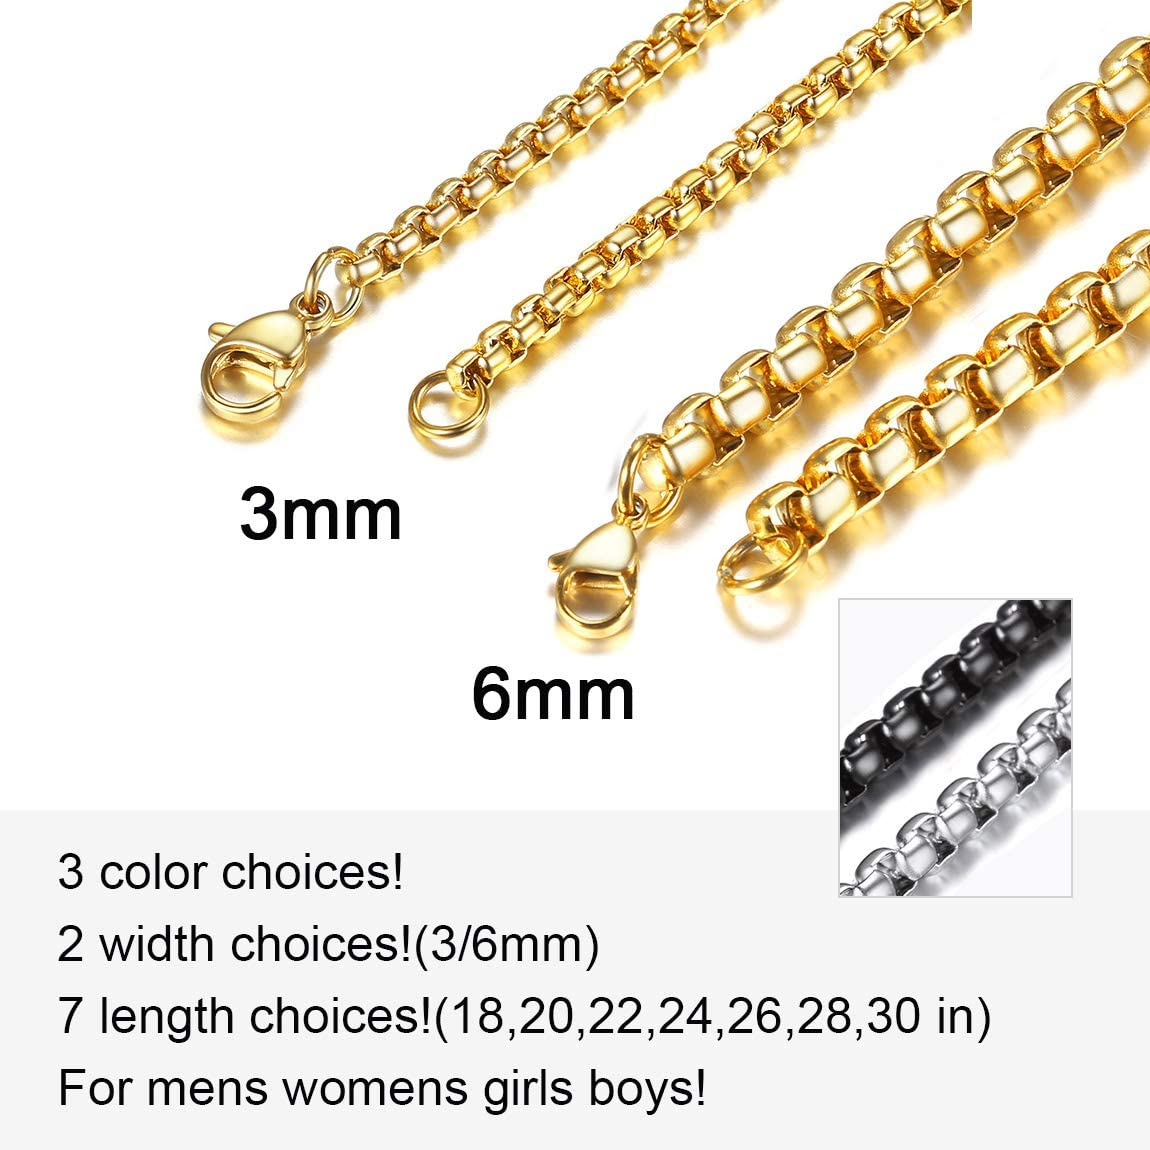 ChainsPro 3mm Belcher Chain Anchor Chain Round Box Chain Necklace Unisex Fashion Jewellery Neck Chains,18k Gold Plated//Stainless Steel//Black,18,20,22,24,26,28,30,32in Pouch Velvet+Gift Box